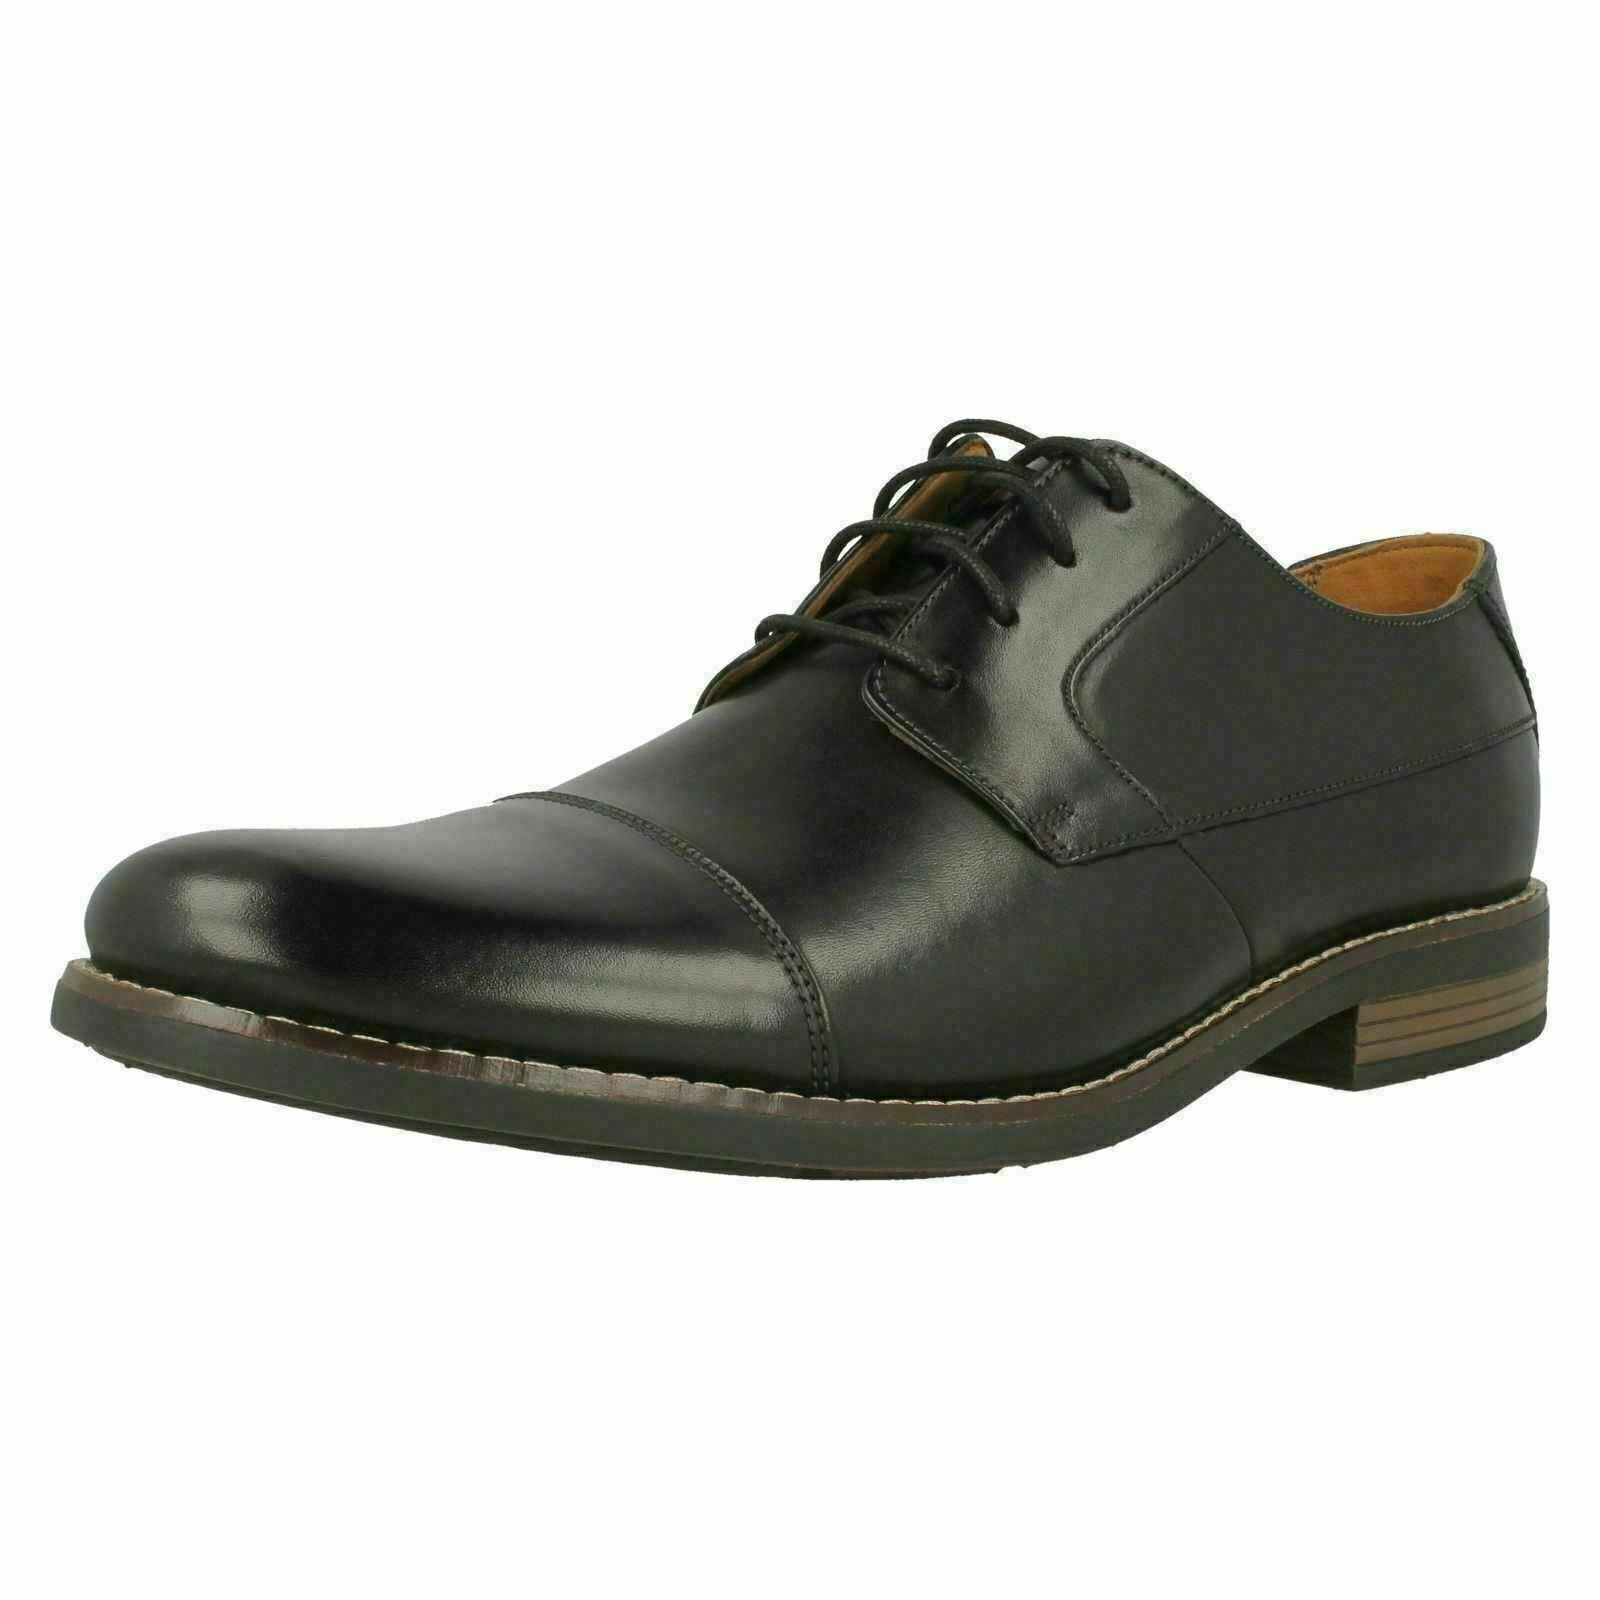 Mens Clarks Glement Over Black Leather Formal Lace Up Shoes G Fitting